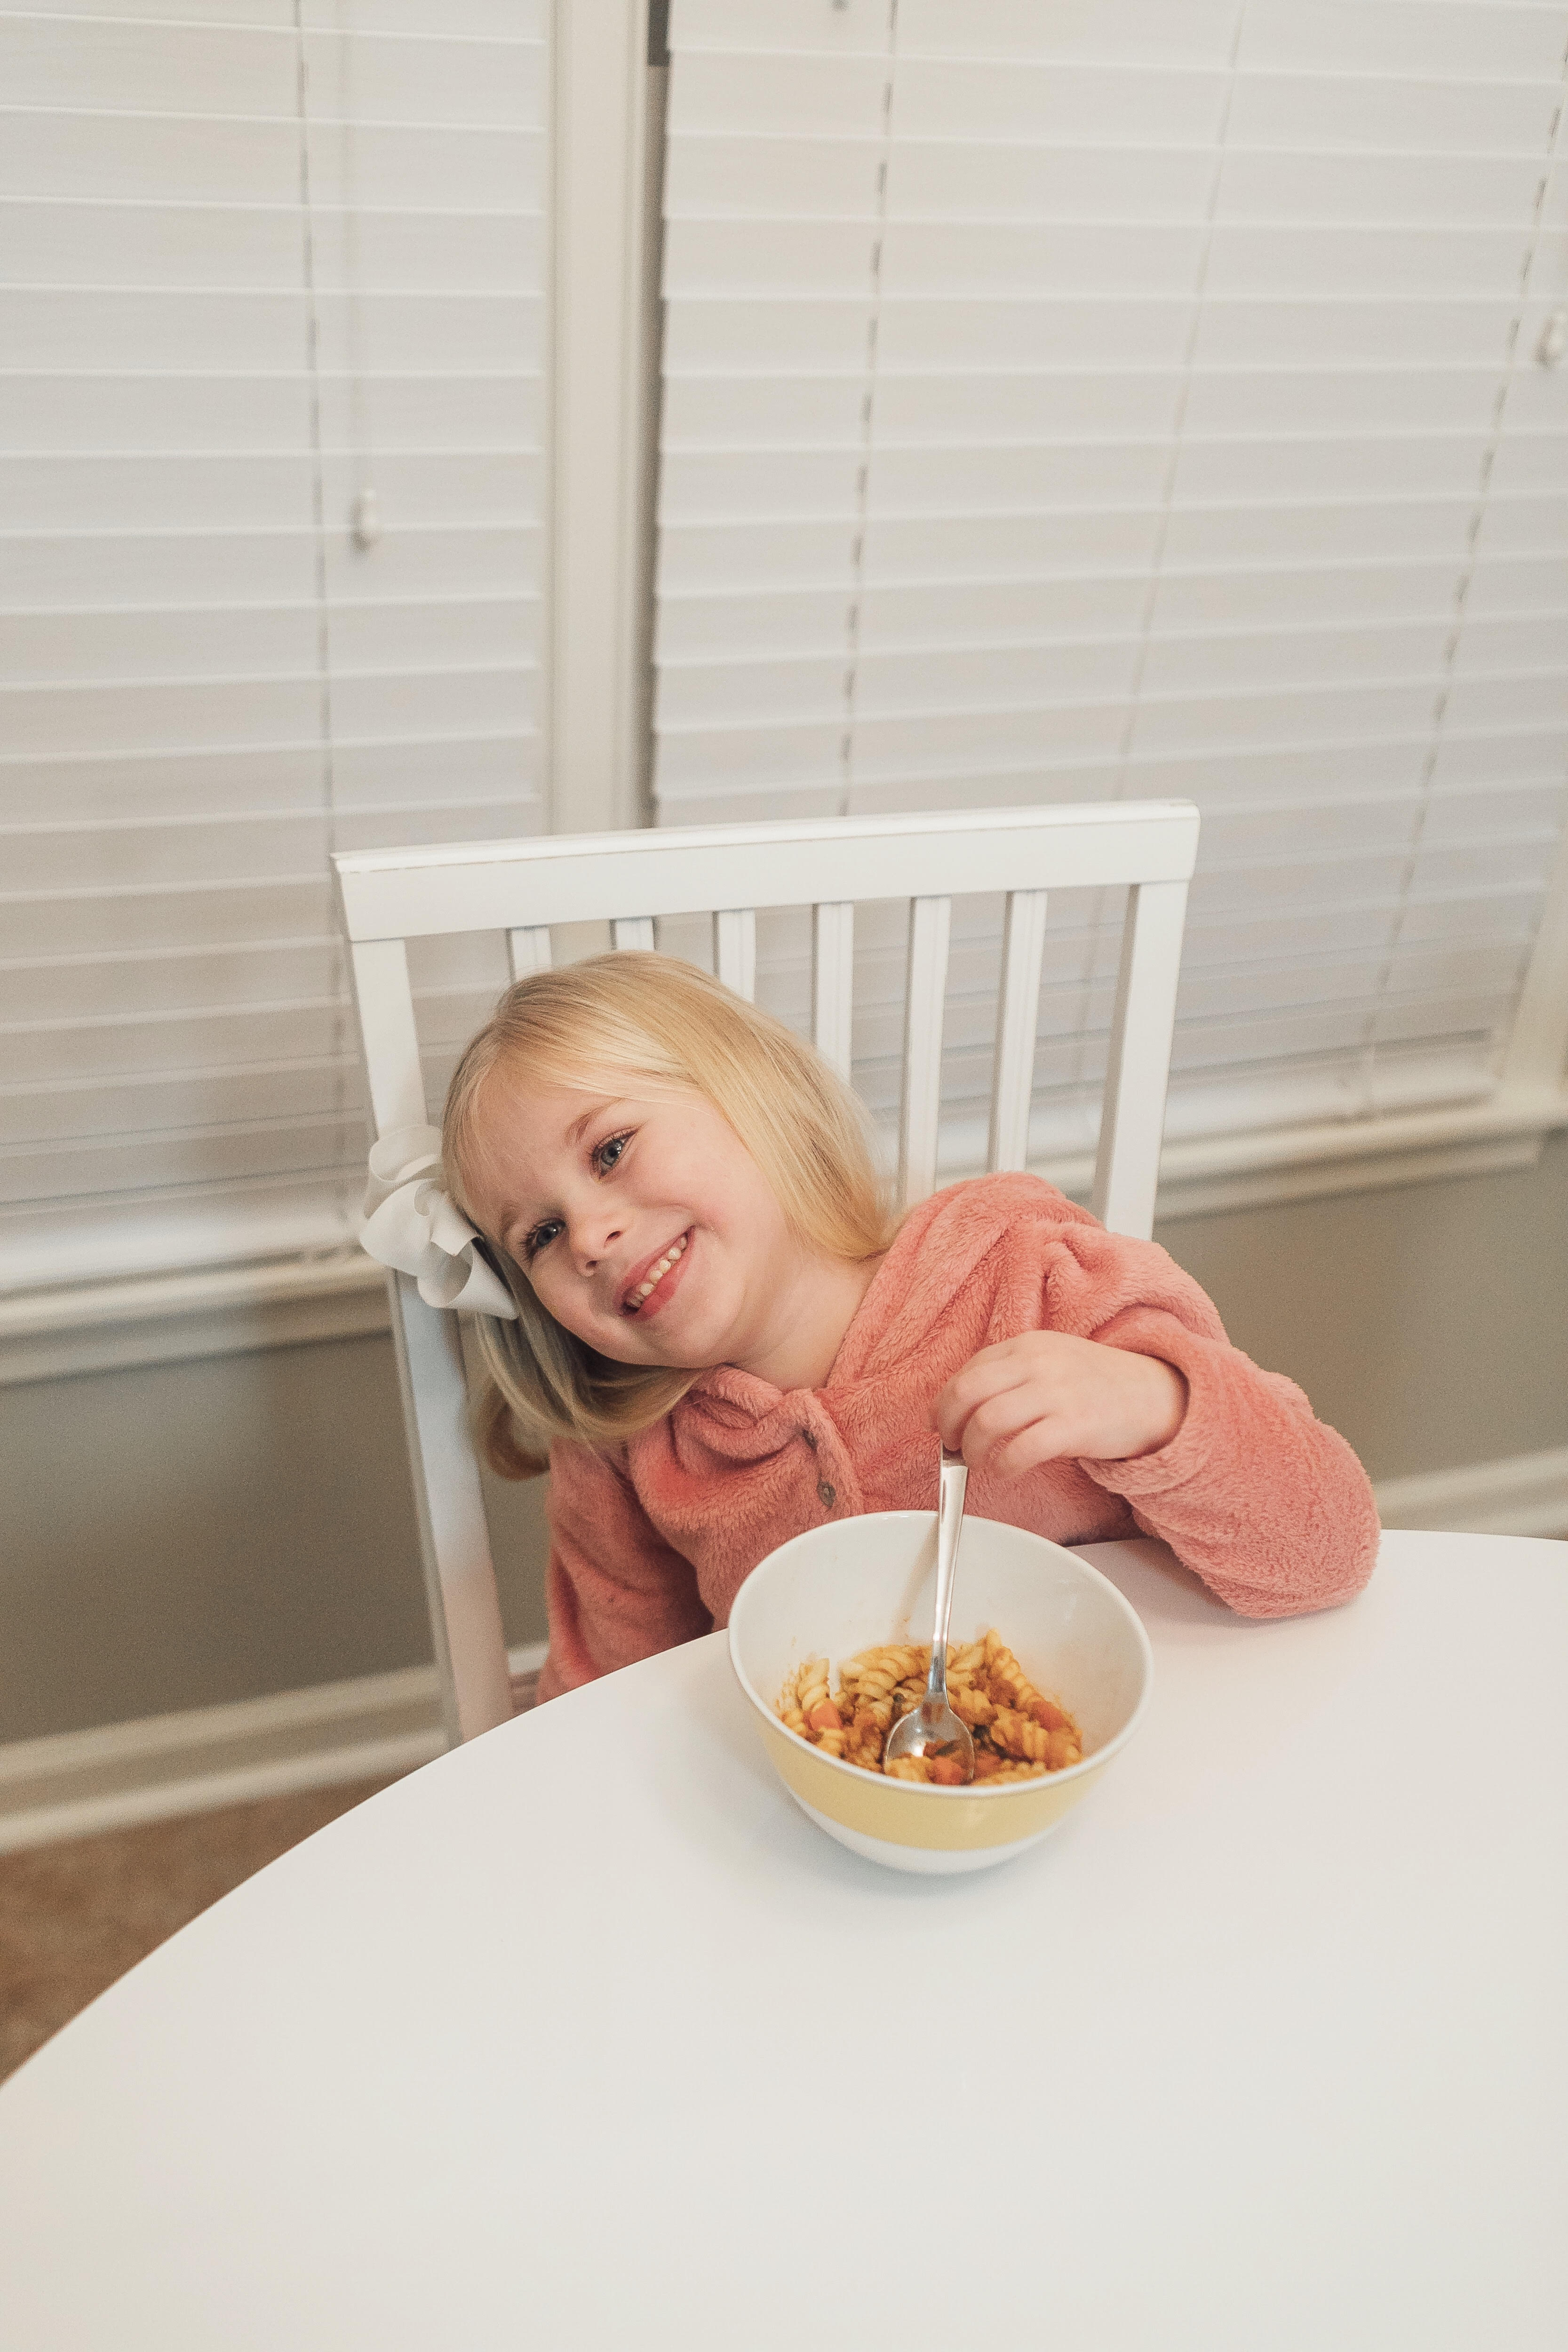 Quick & Nutritious Meals for Picky Toddlers